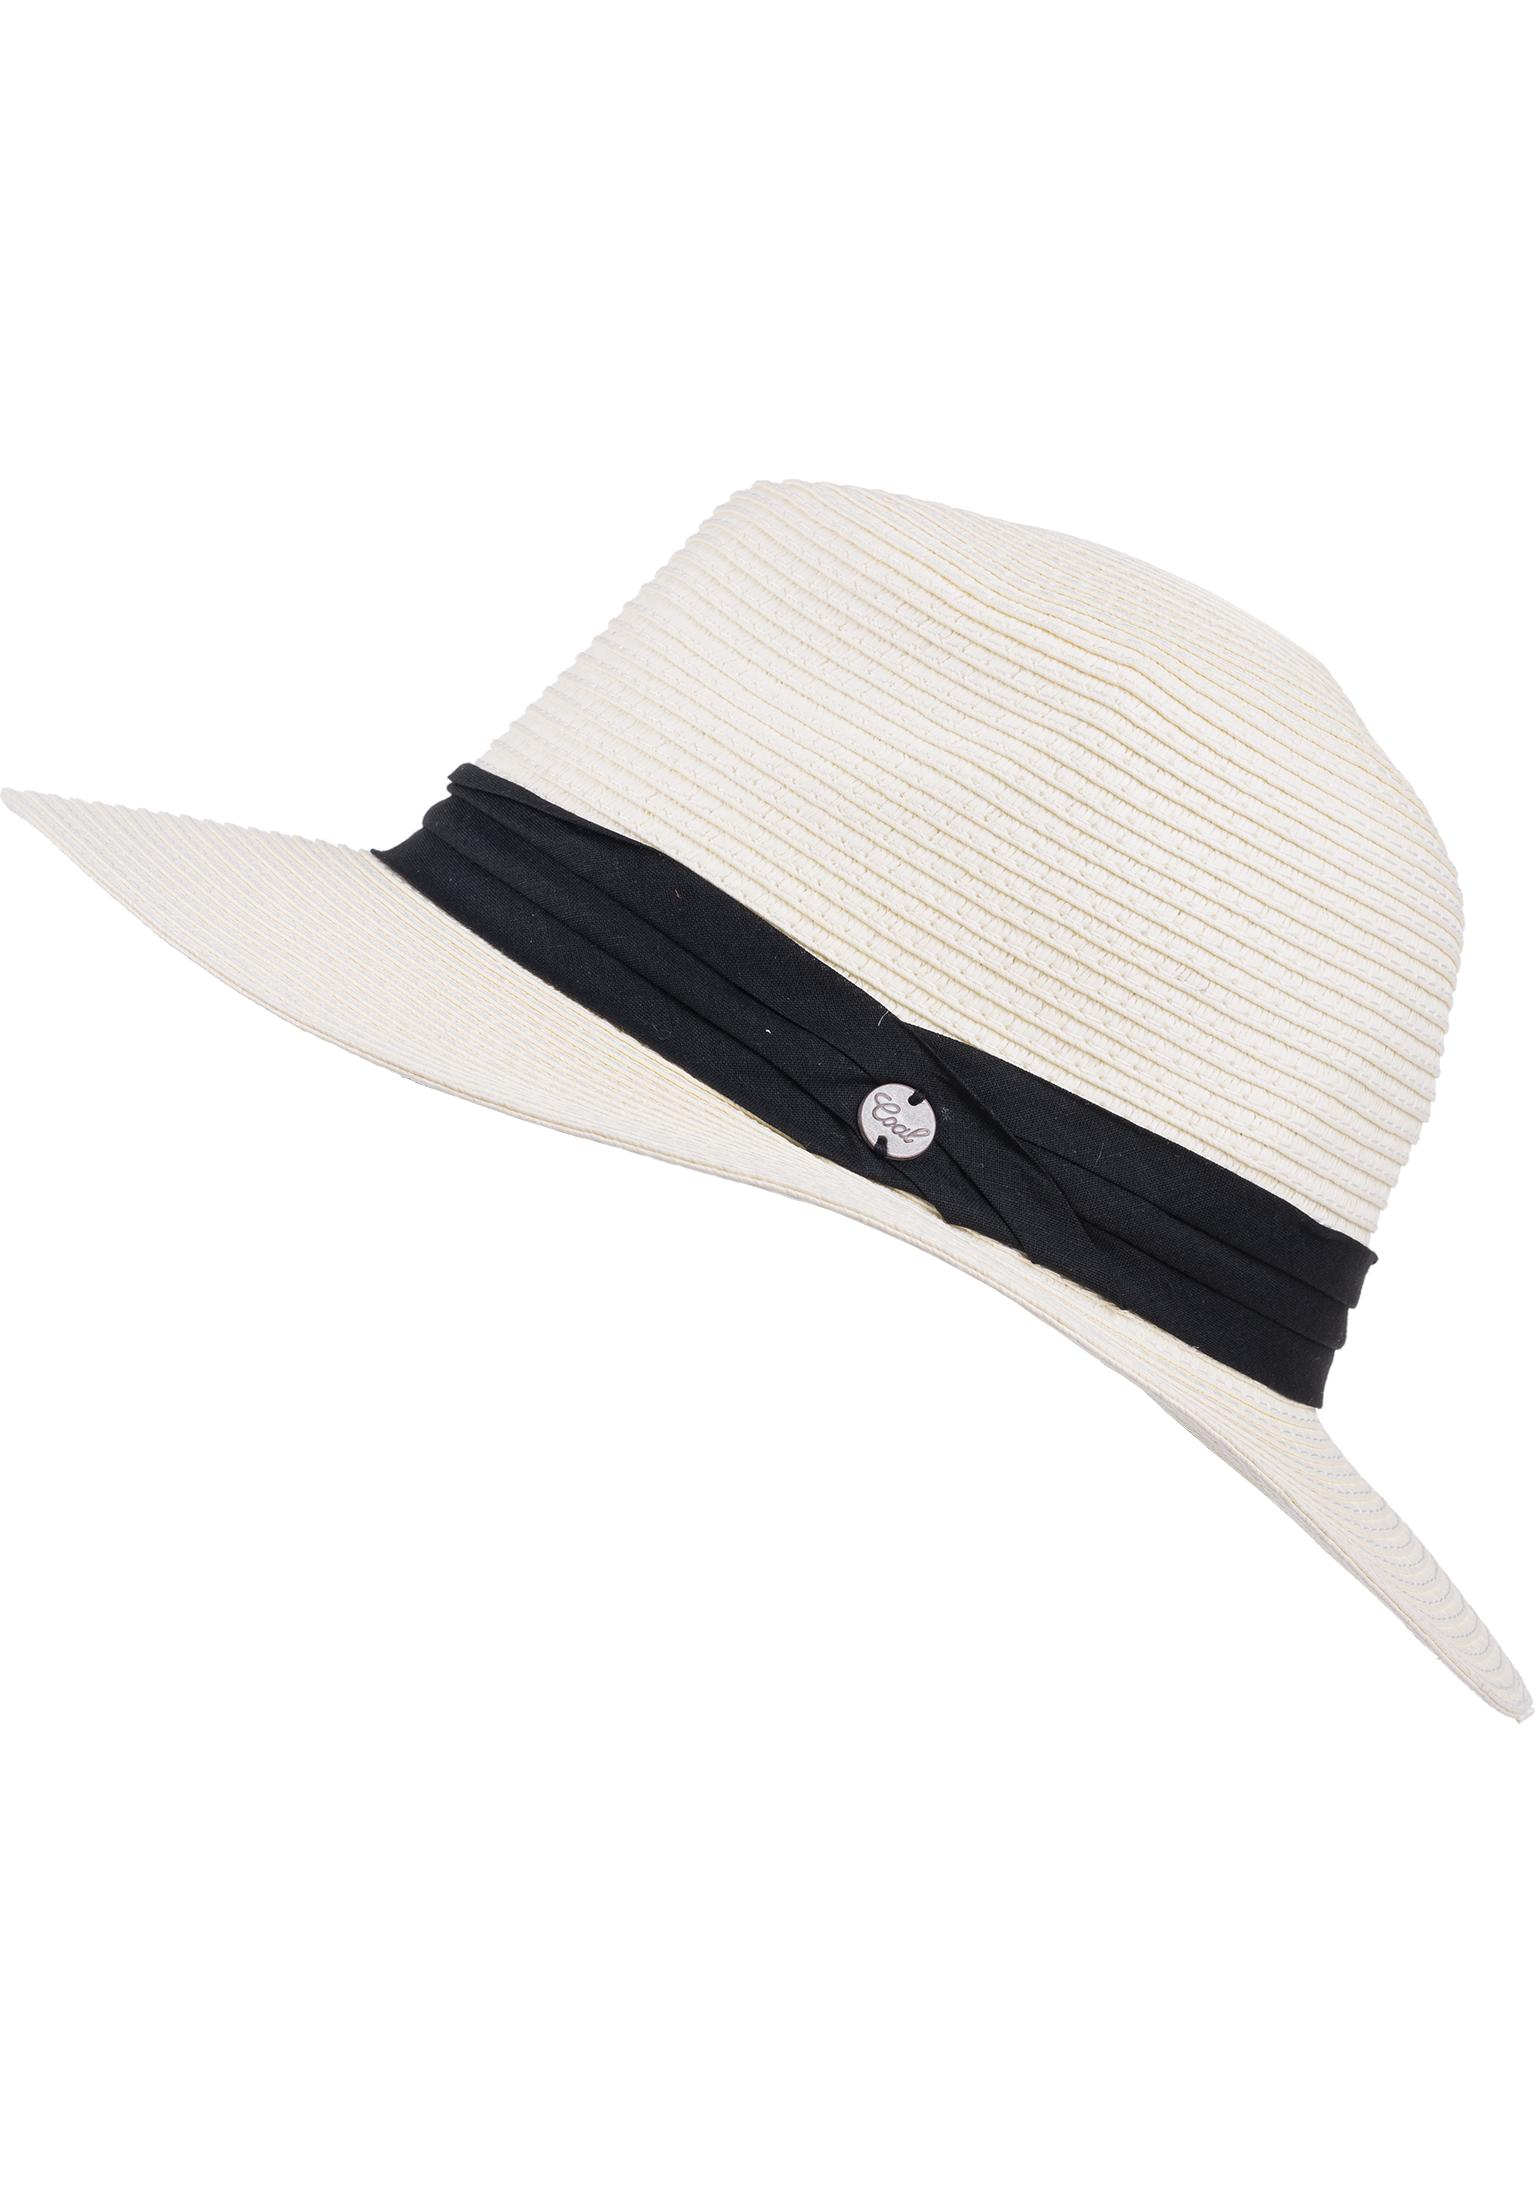 The Andie coal Hats in white for Women  bc50ba6b0